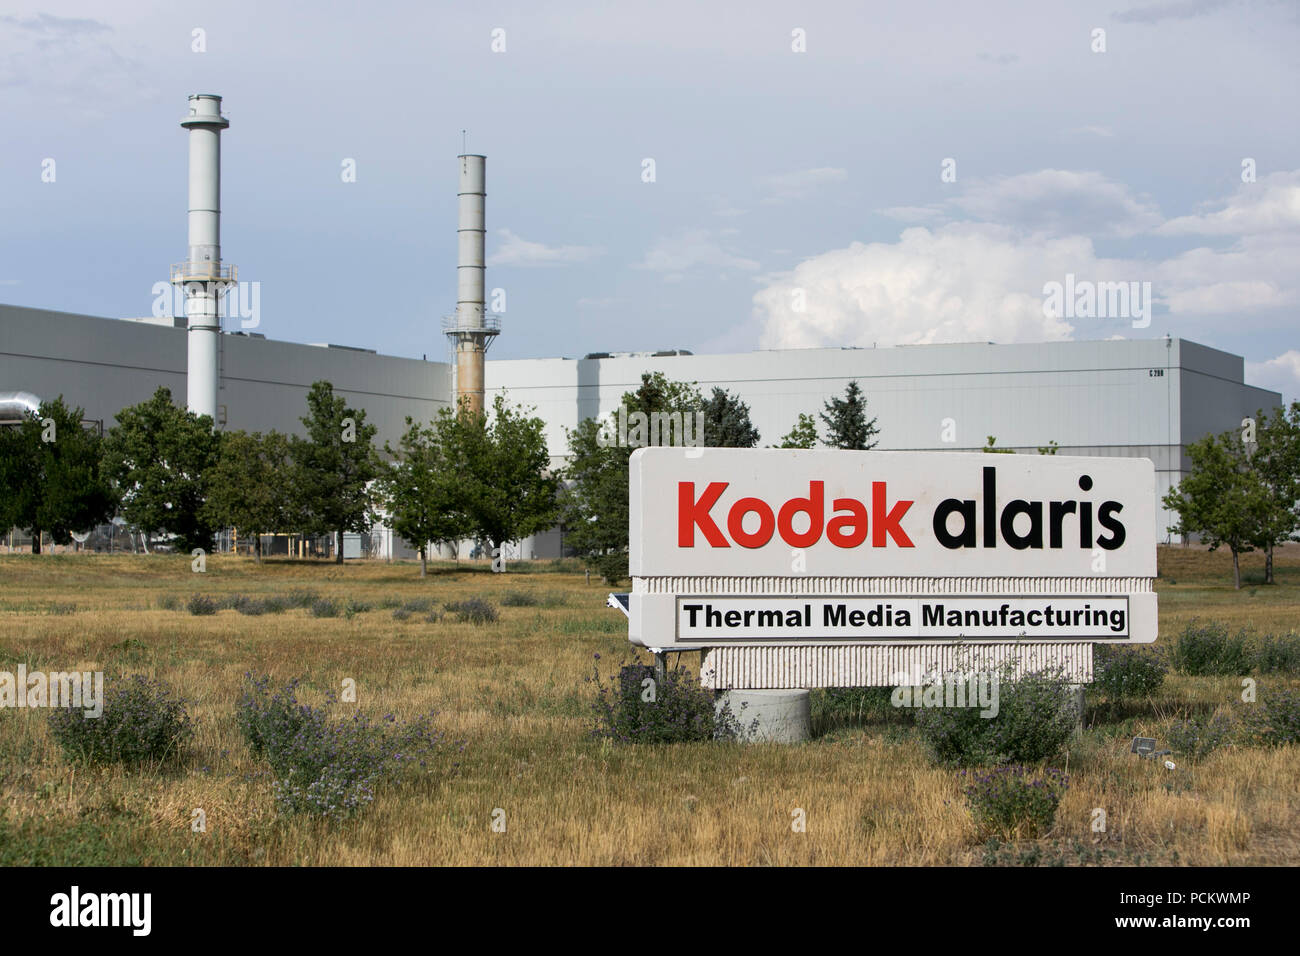 A logo sign outside of a facility occupied by Kodak Alaris